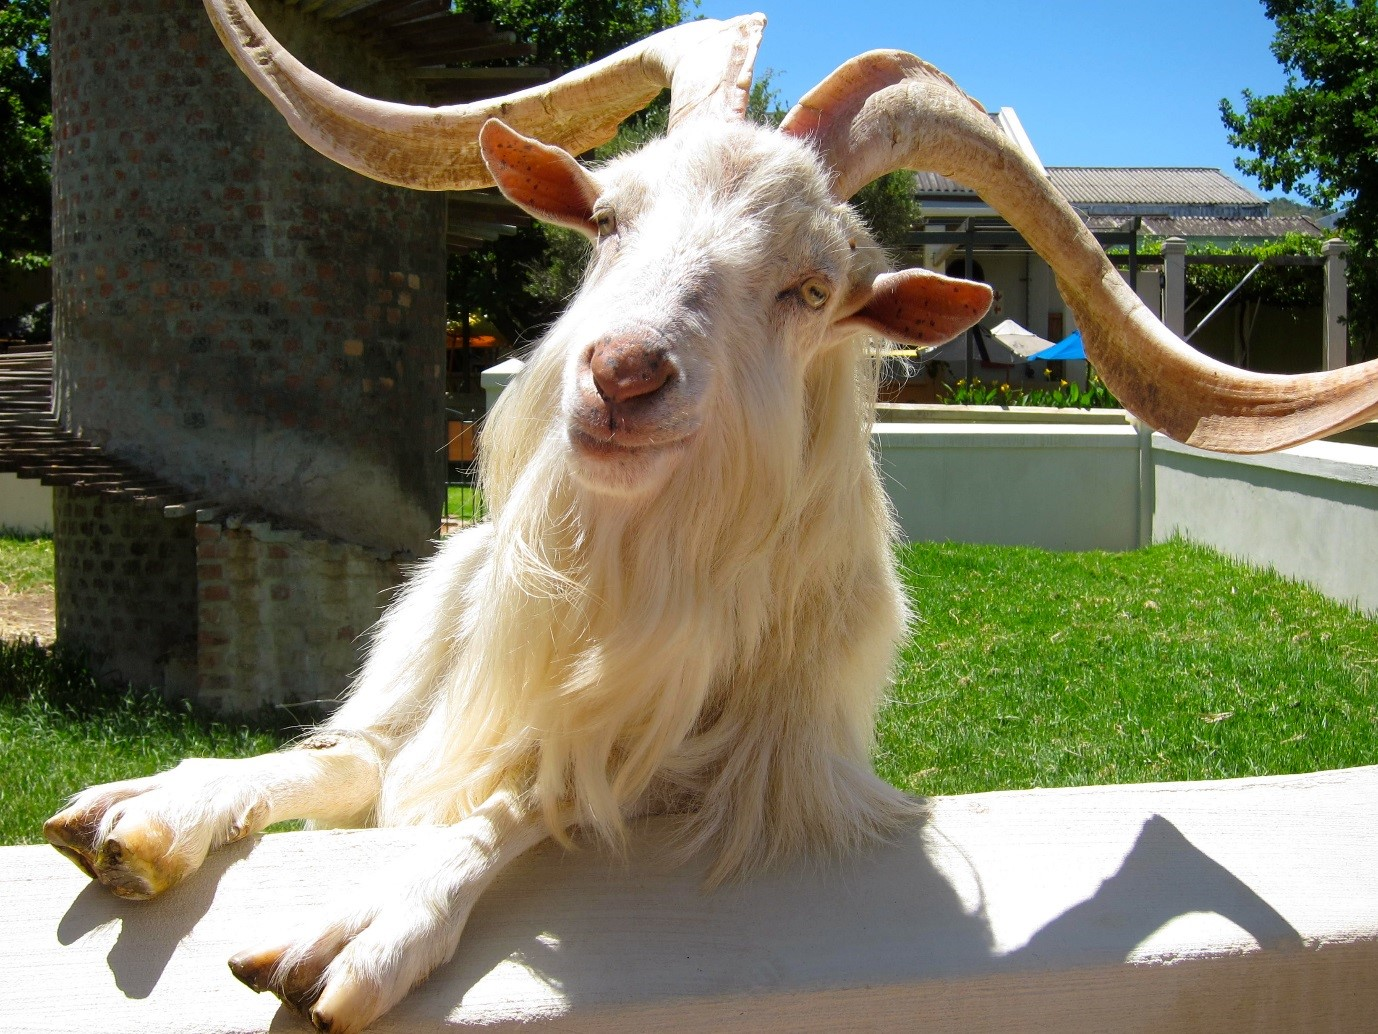 Goat at Fairview